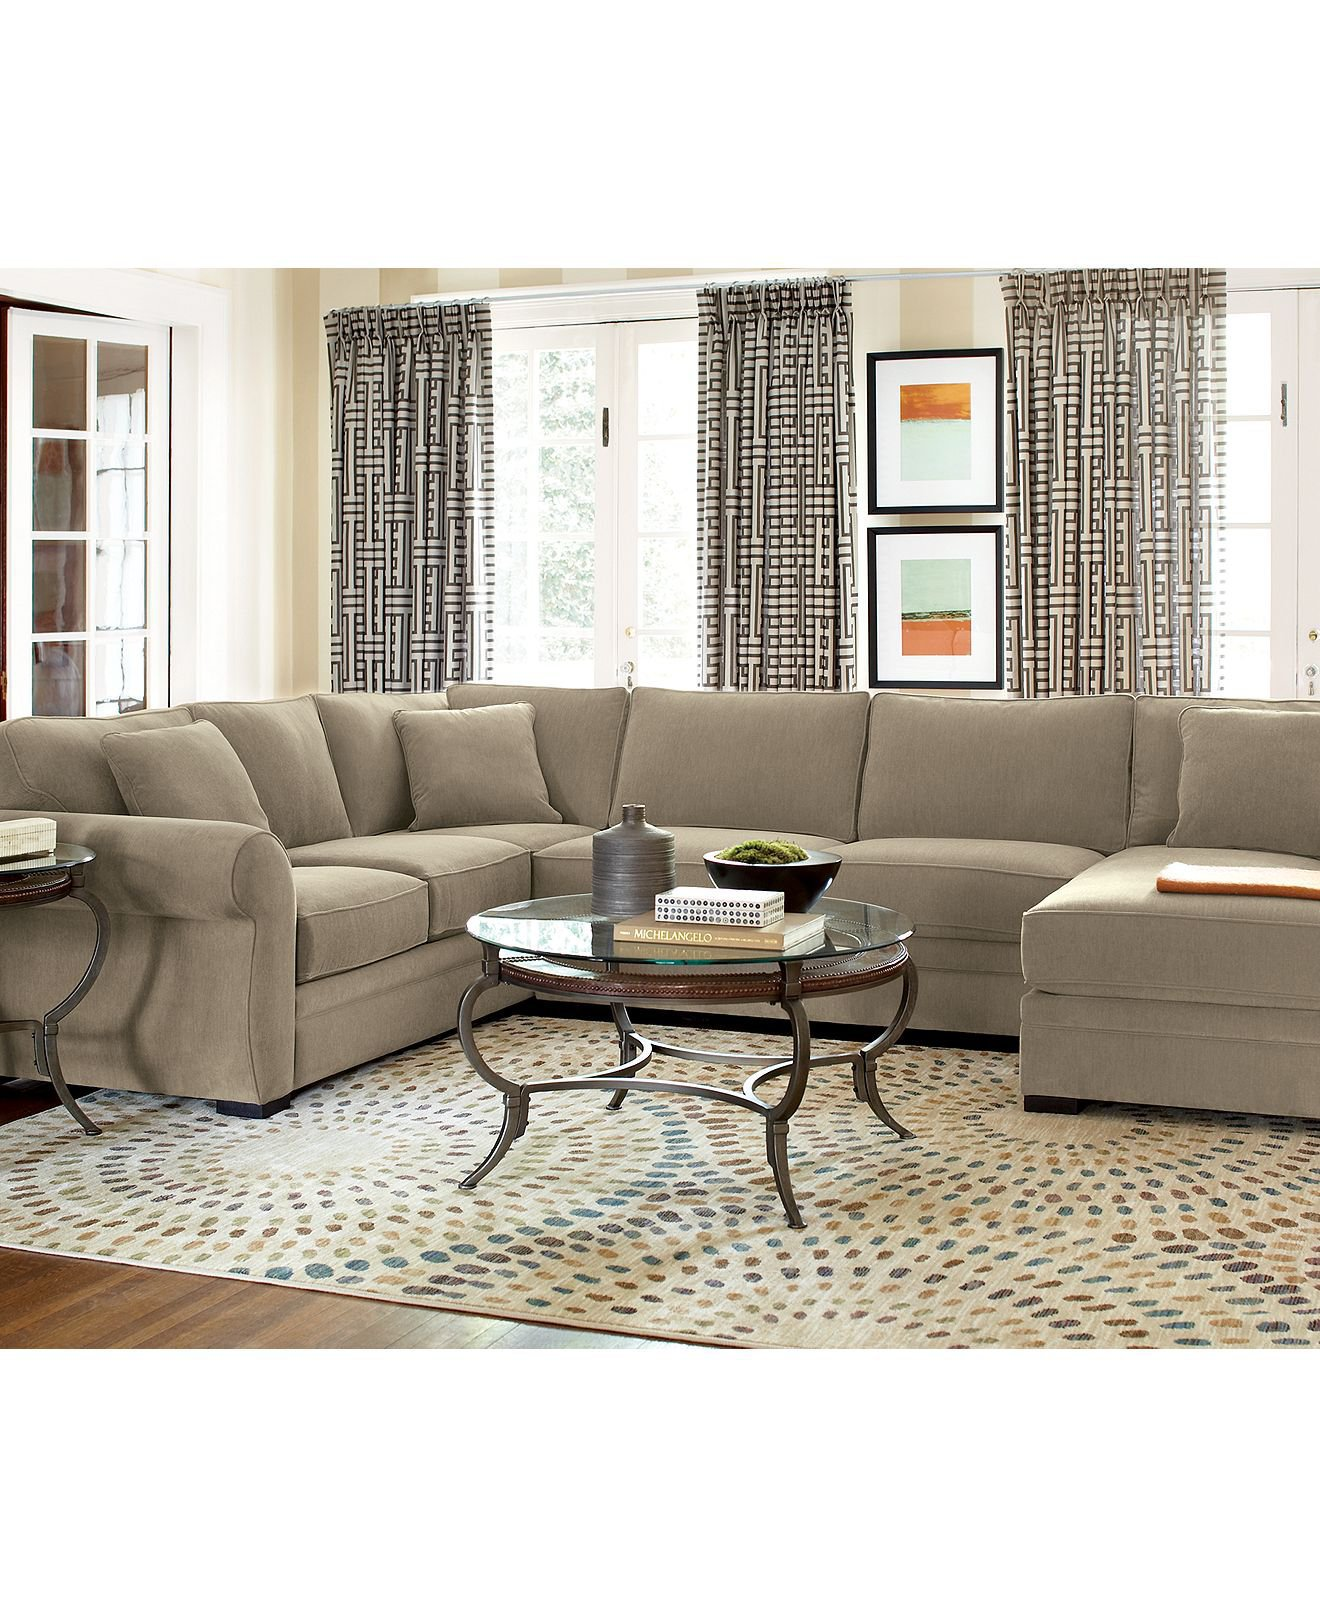 Devon living room furniture sets from macy 39 s the house for Family room sofa sets